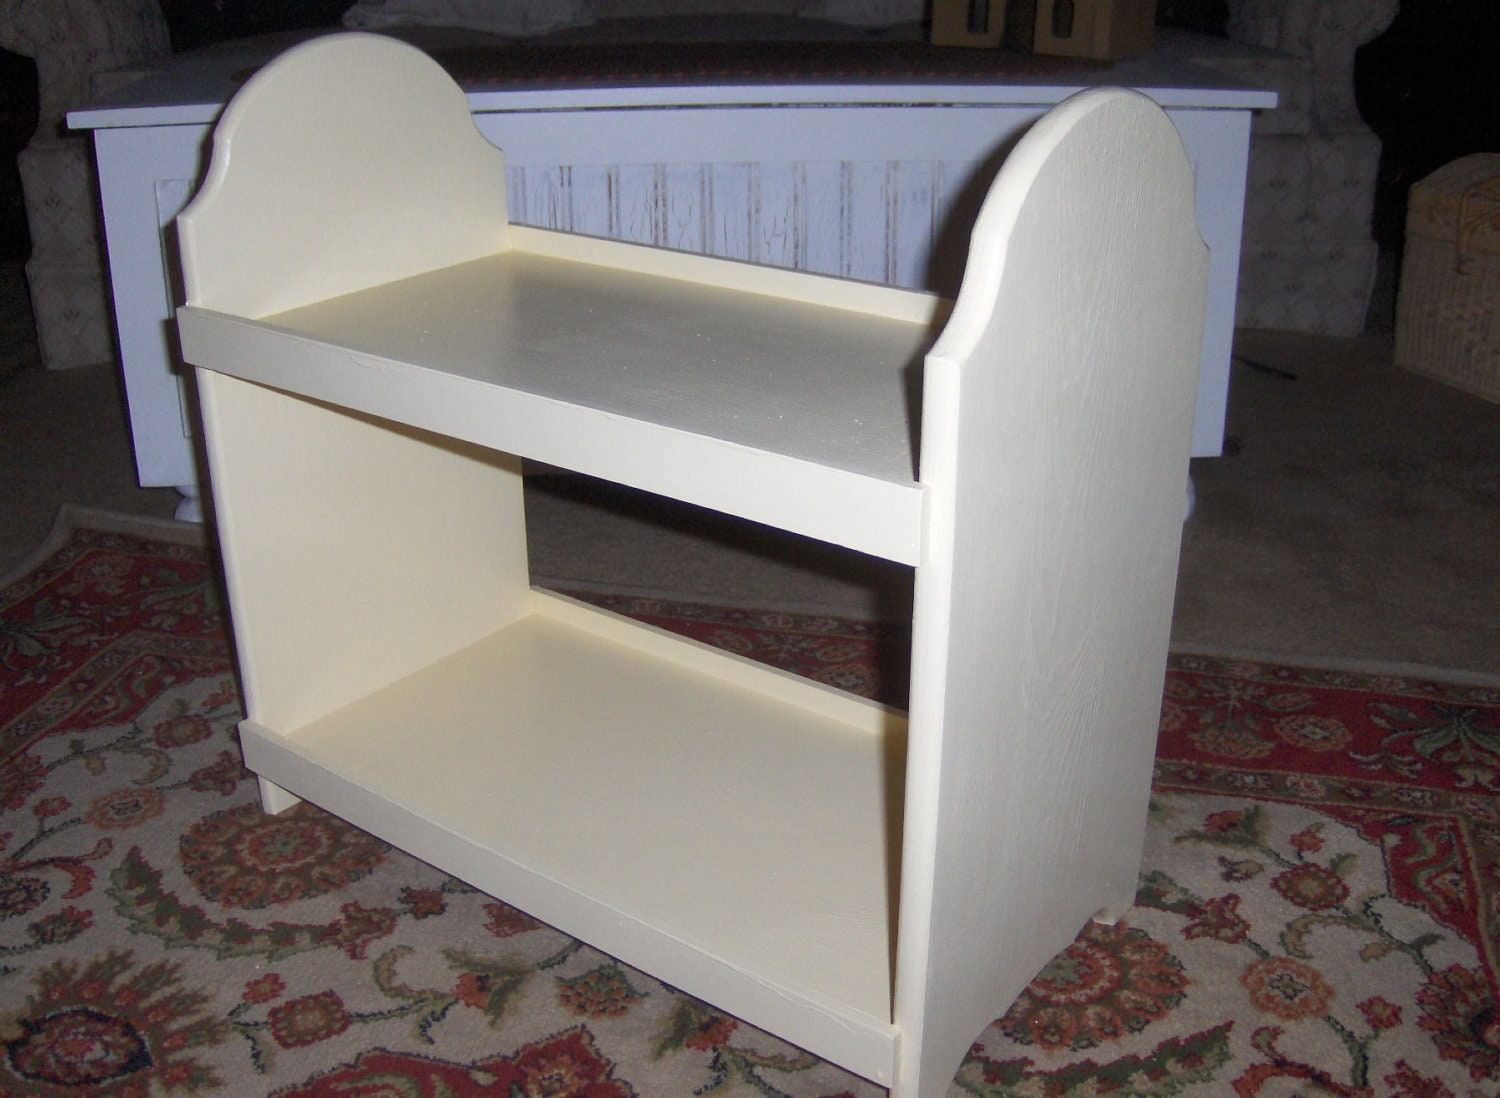 Marvelous photograph of Unfinished Doll bunk bed for hollimcleod by PineandMore on Etsy with #535B78 color and 1500x1098 pixels